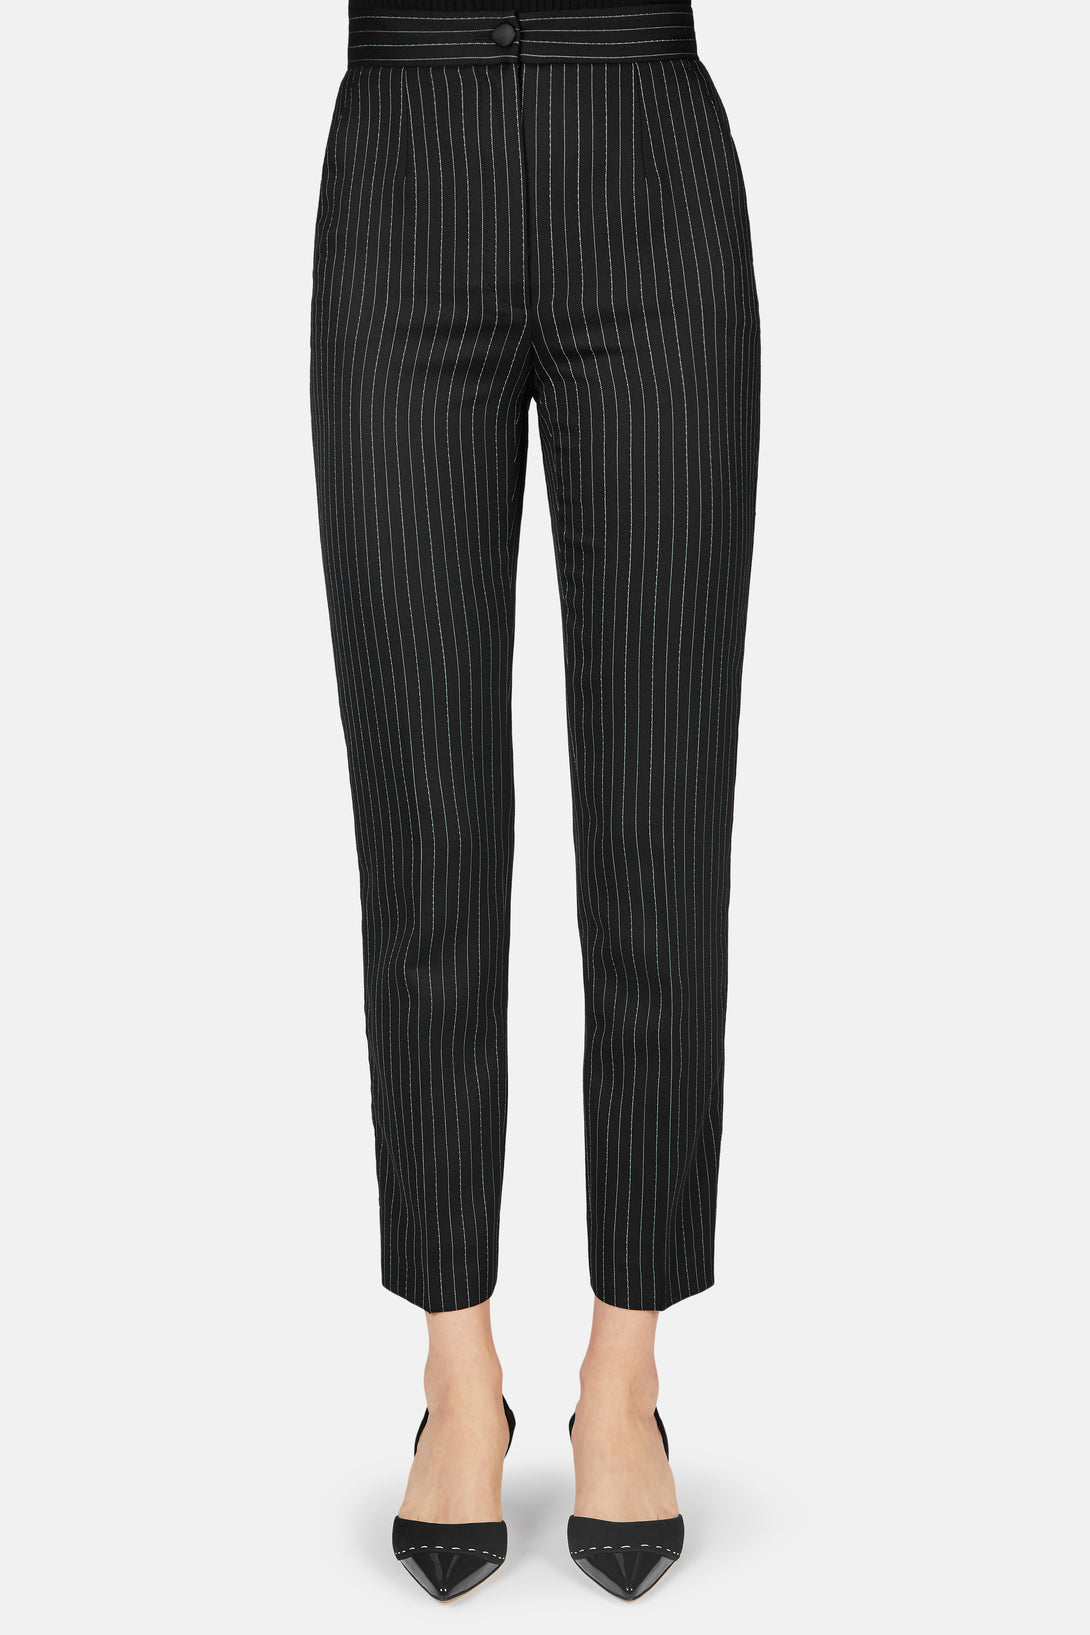 Pinstripe High Waisted Pant - Black